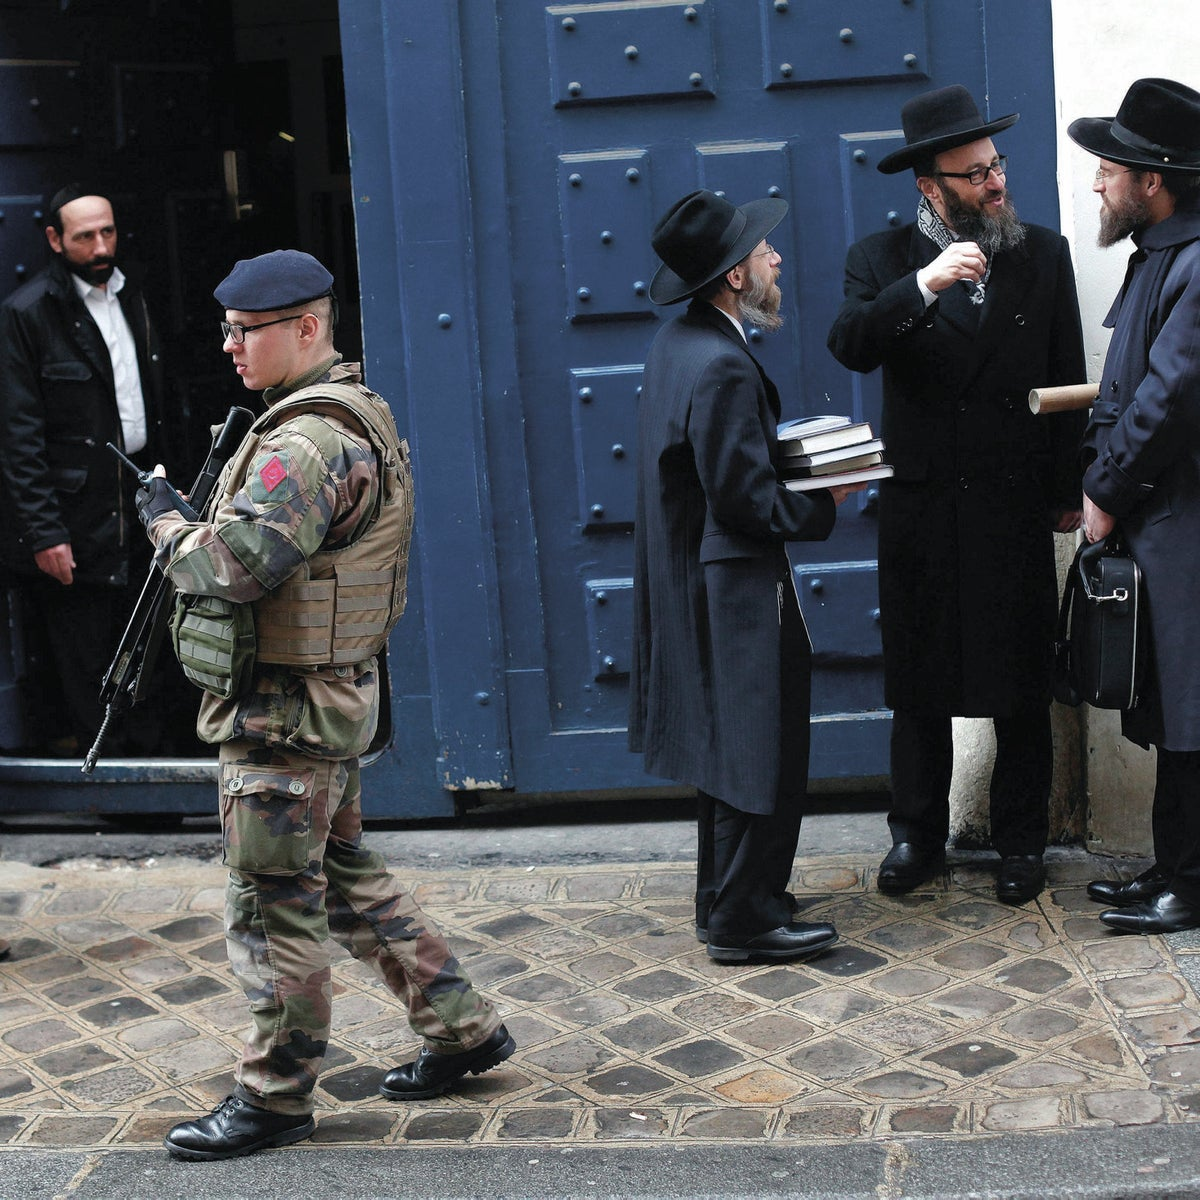 A French soldier patrols next to a Jewish school, in Paris, following three days of bloodshed in the city, Jan. 13, 2015.